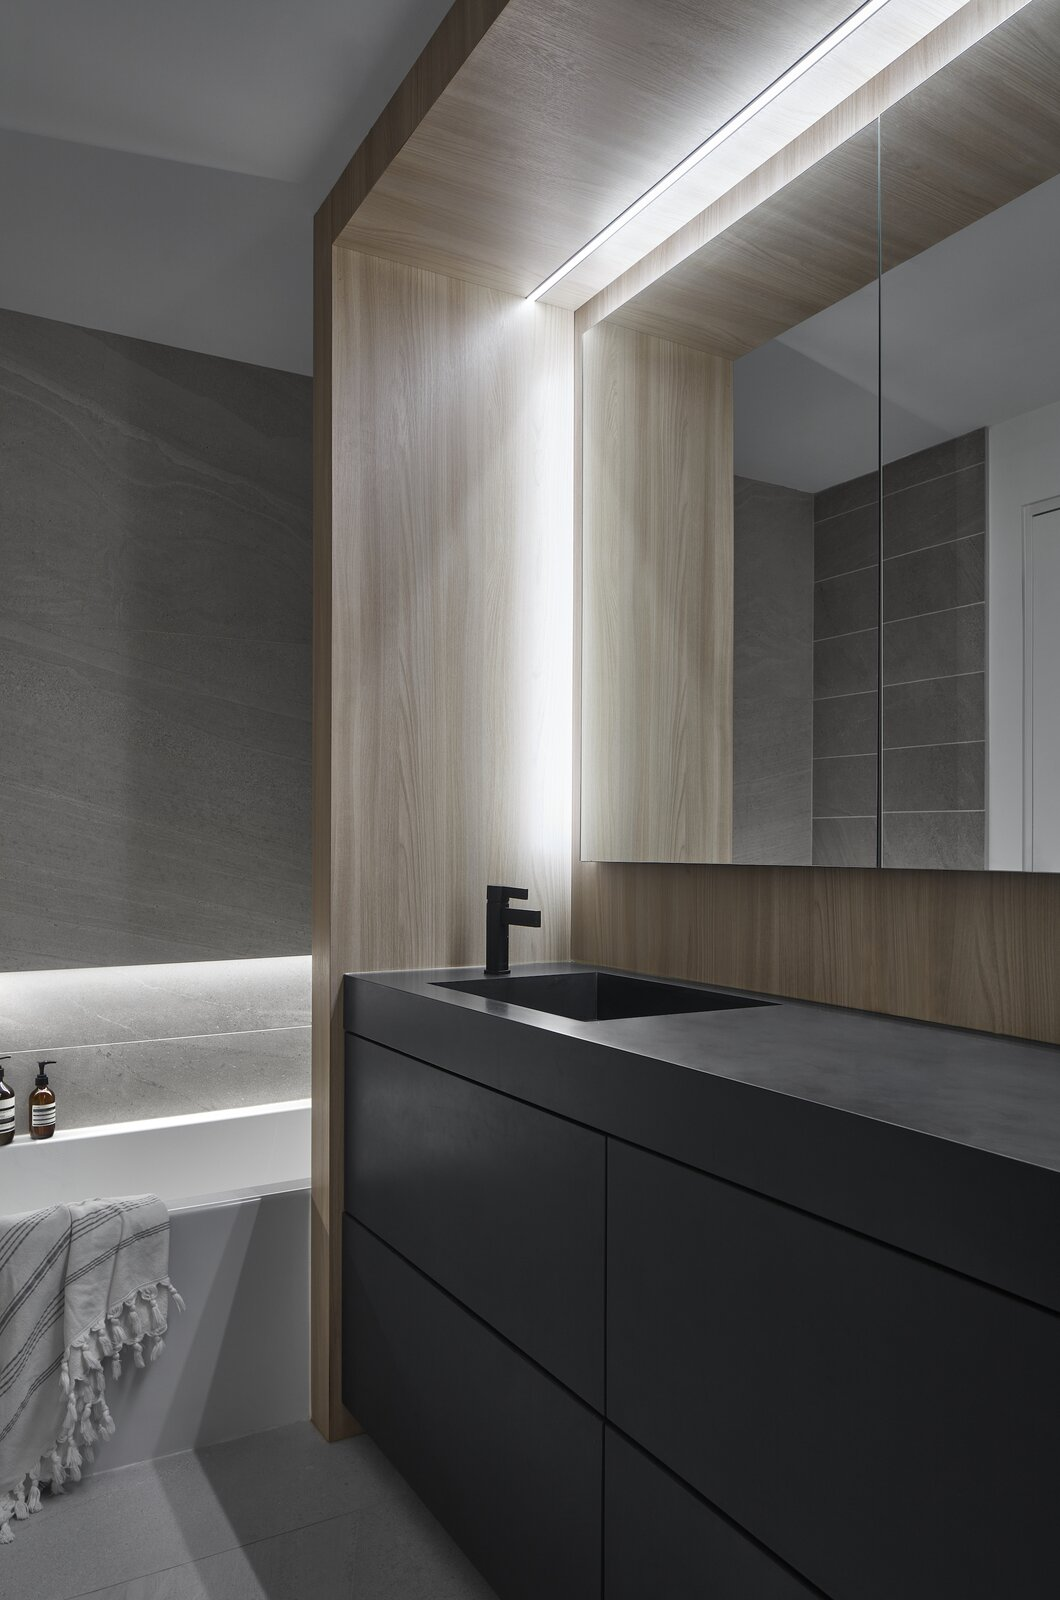 Bathroom of Walker Residence by Reflect Architecture.